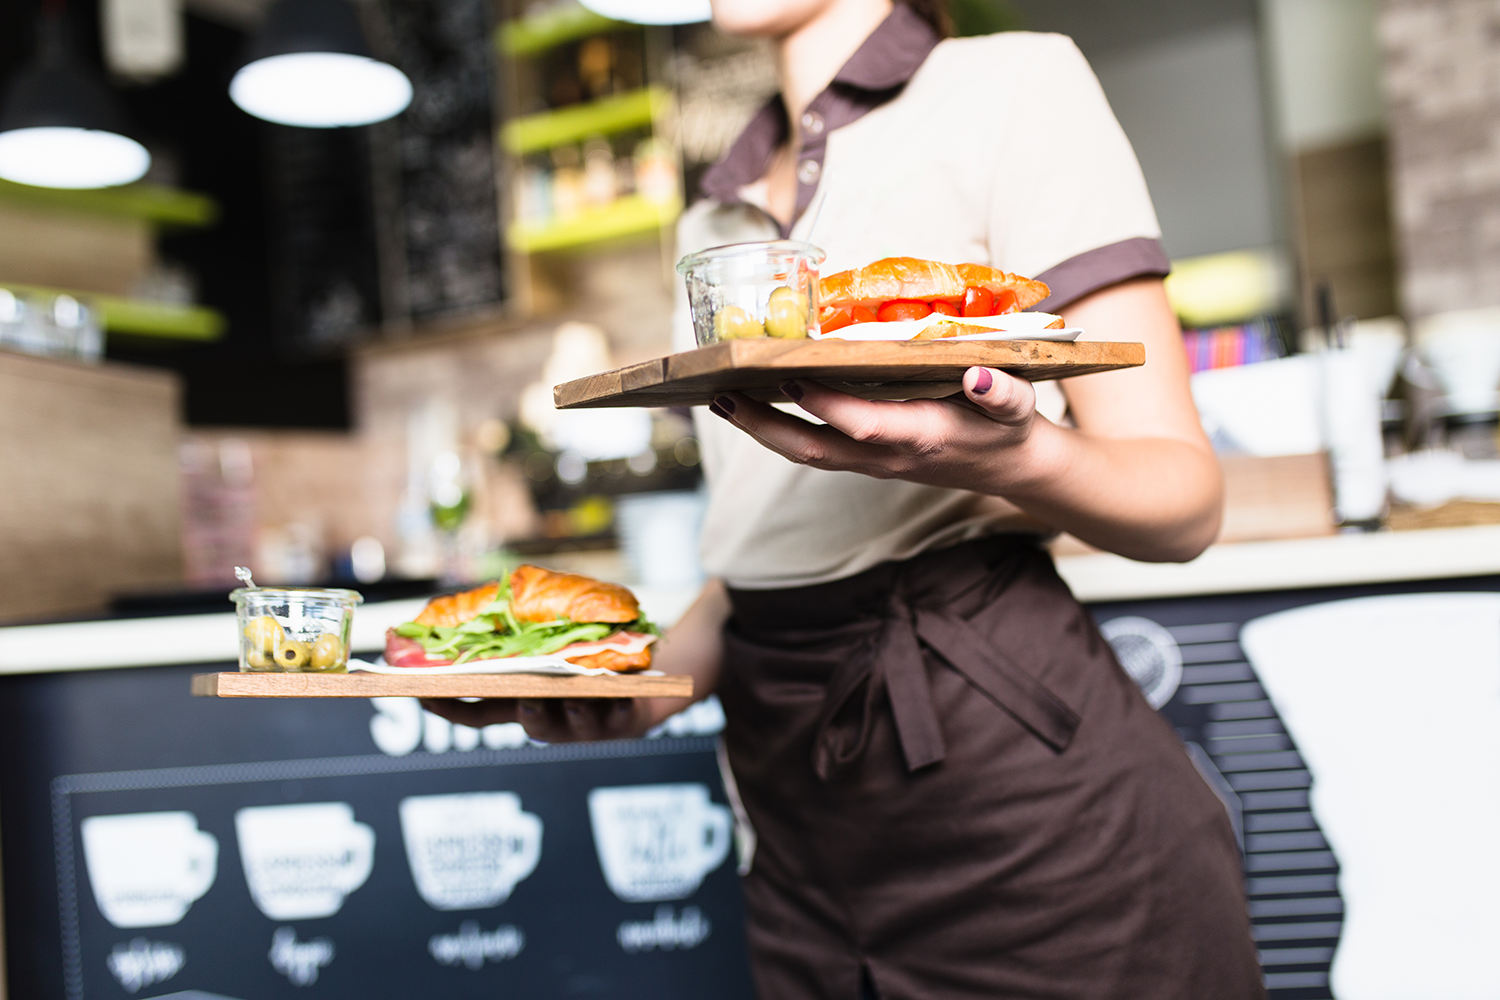 Restaurant review tip #5: improve your customer service